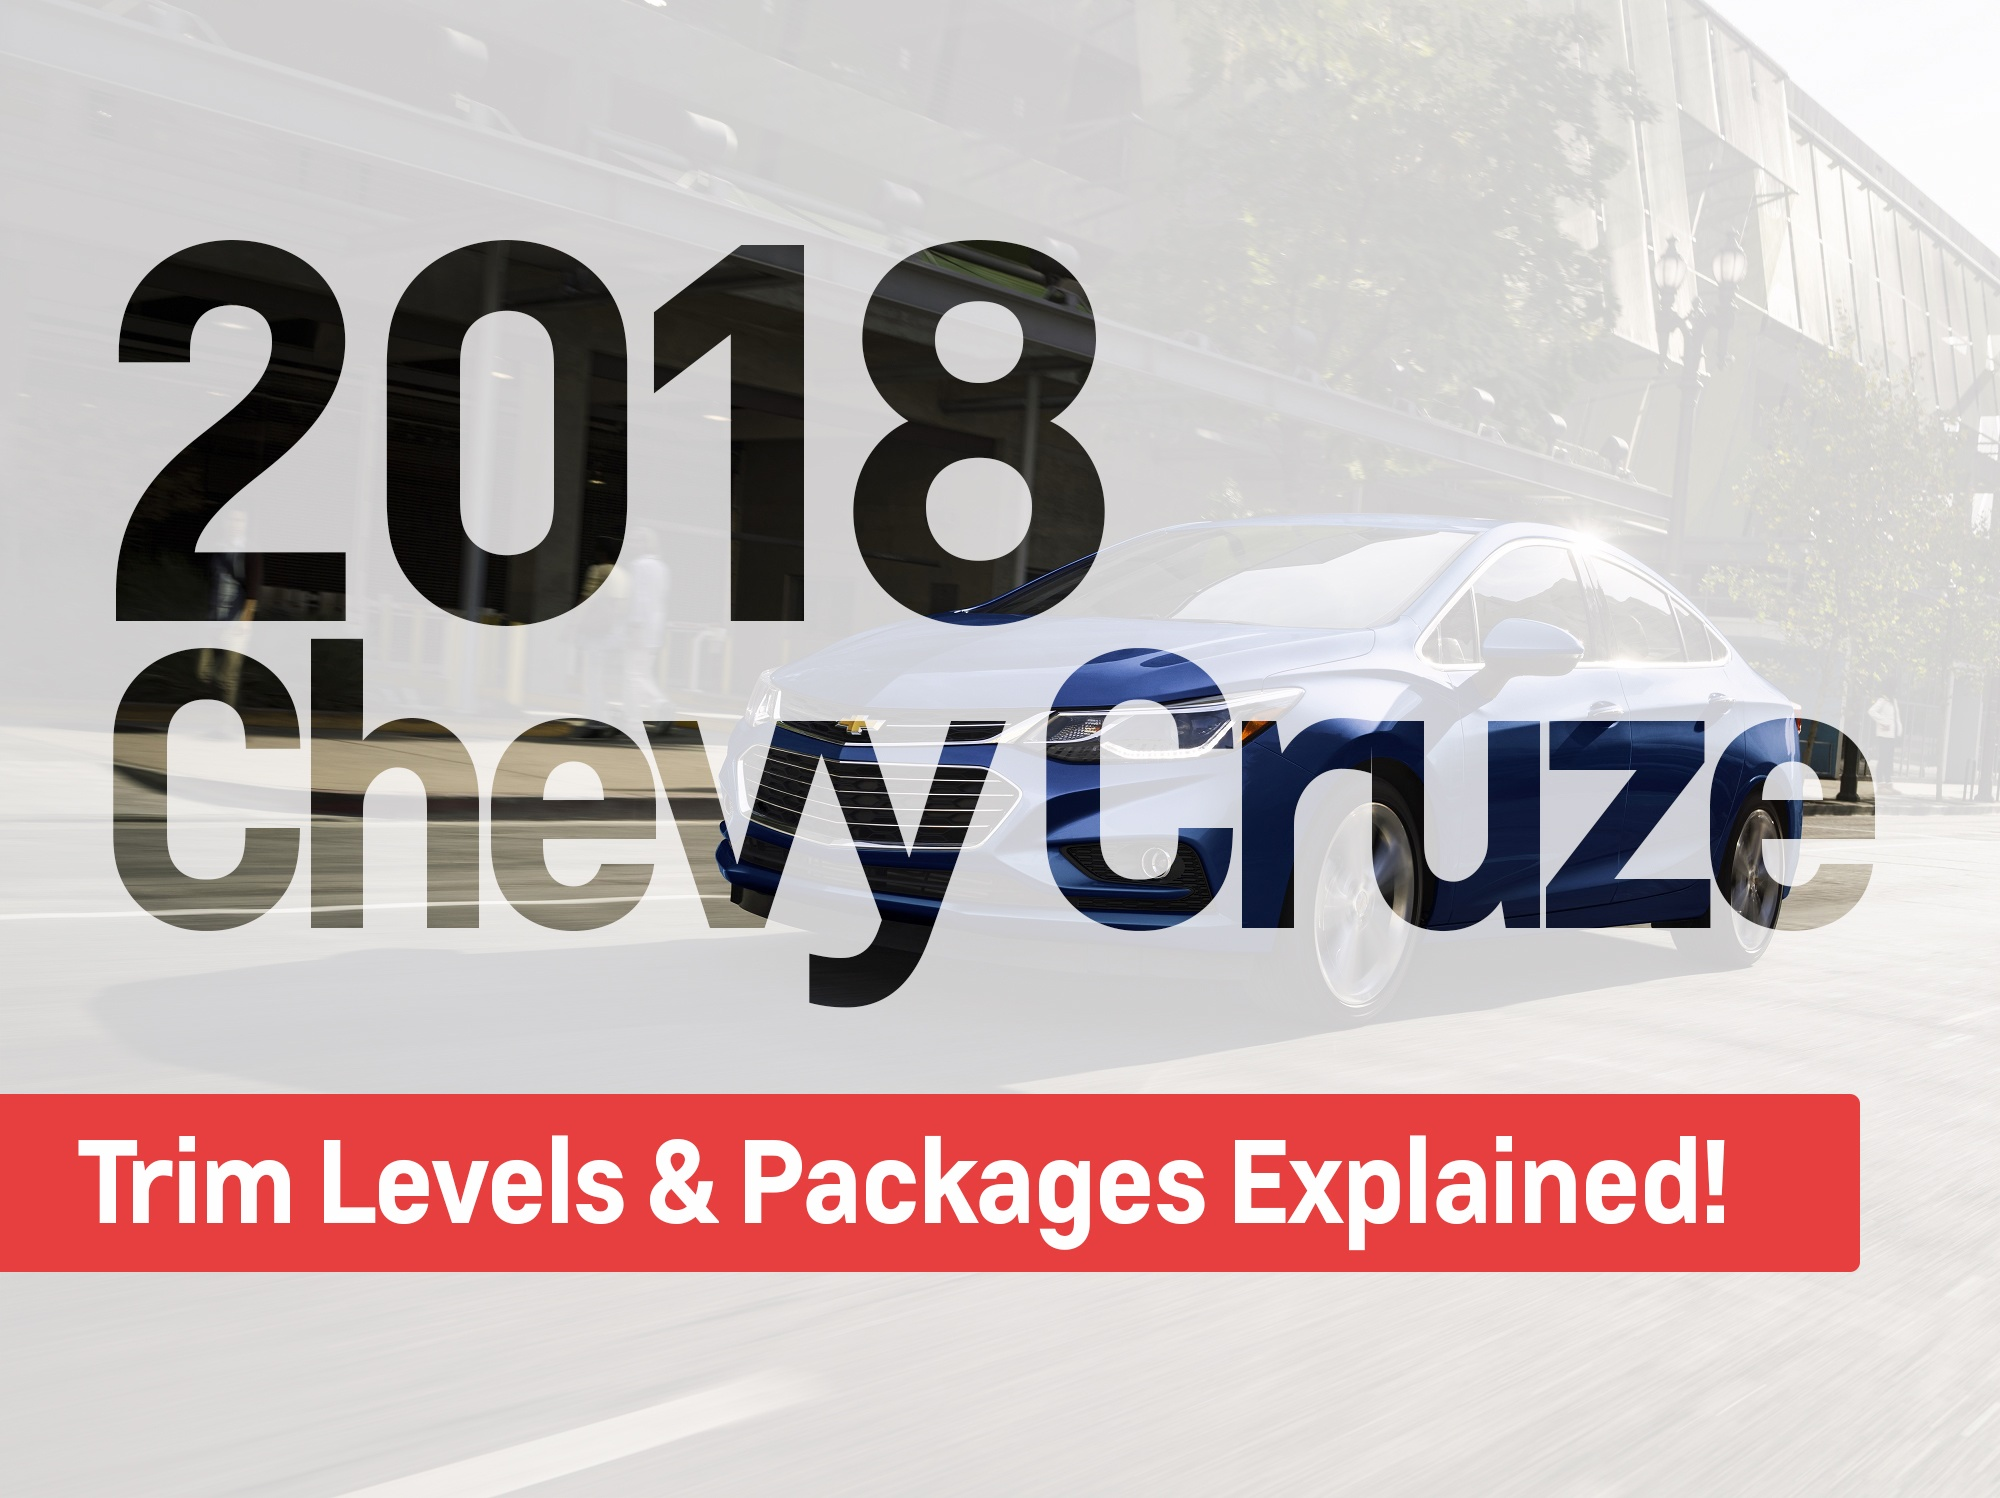 2018 Chevy Cruze - Trim Levels & Packages!